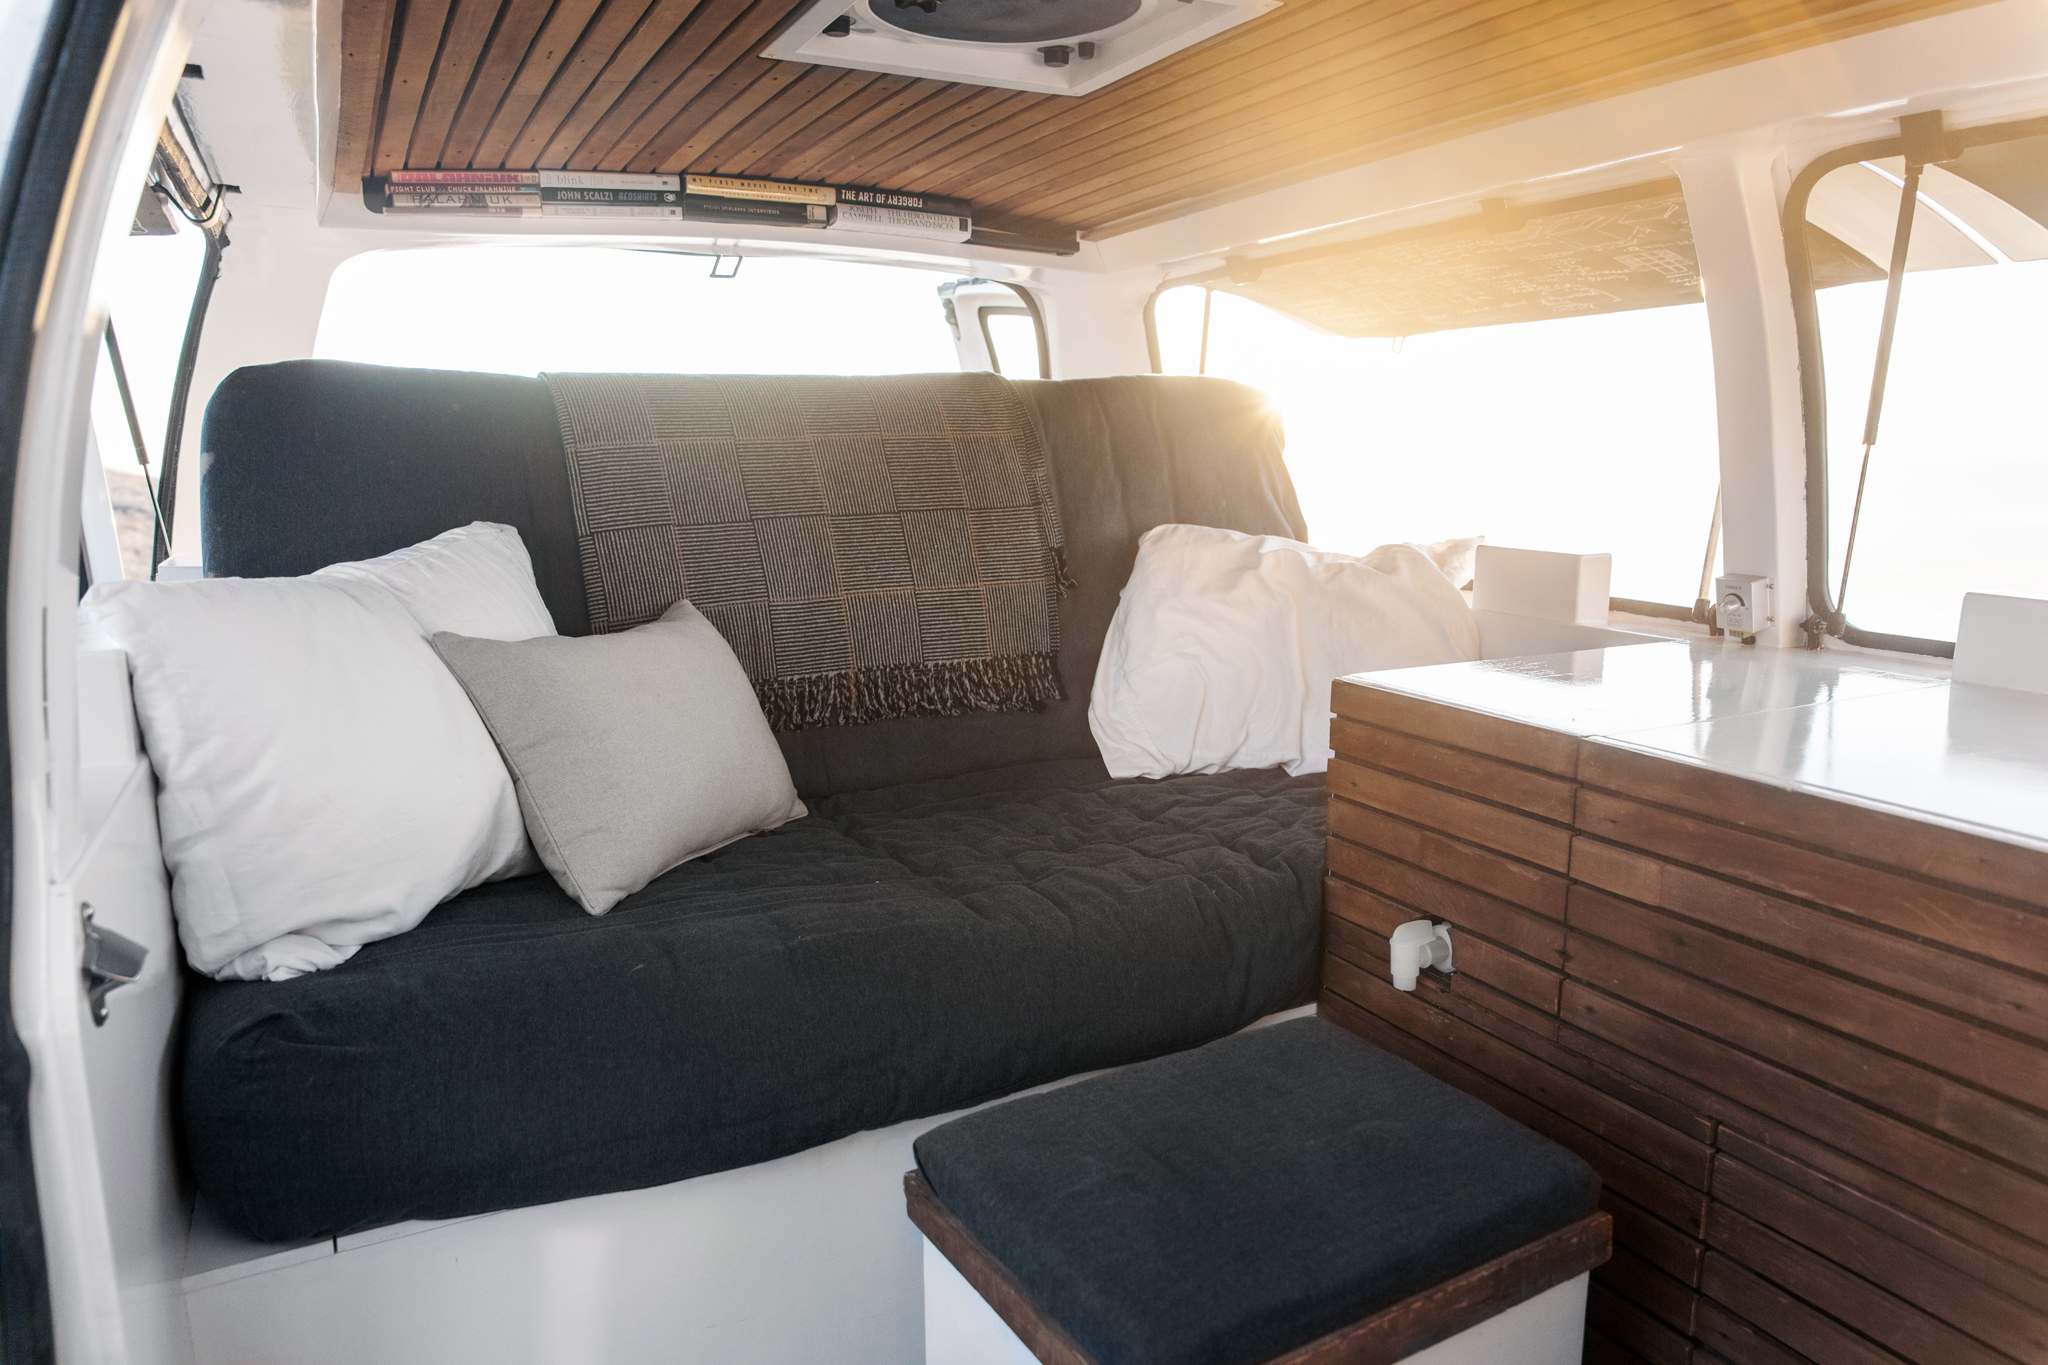 Tour A Chevy Van Turned Into Sleek Tiny Live Work Space